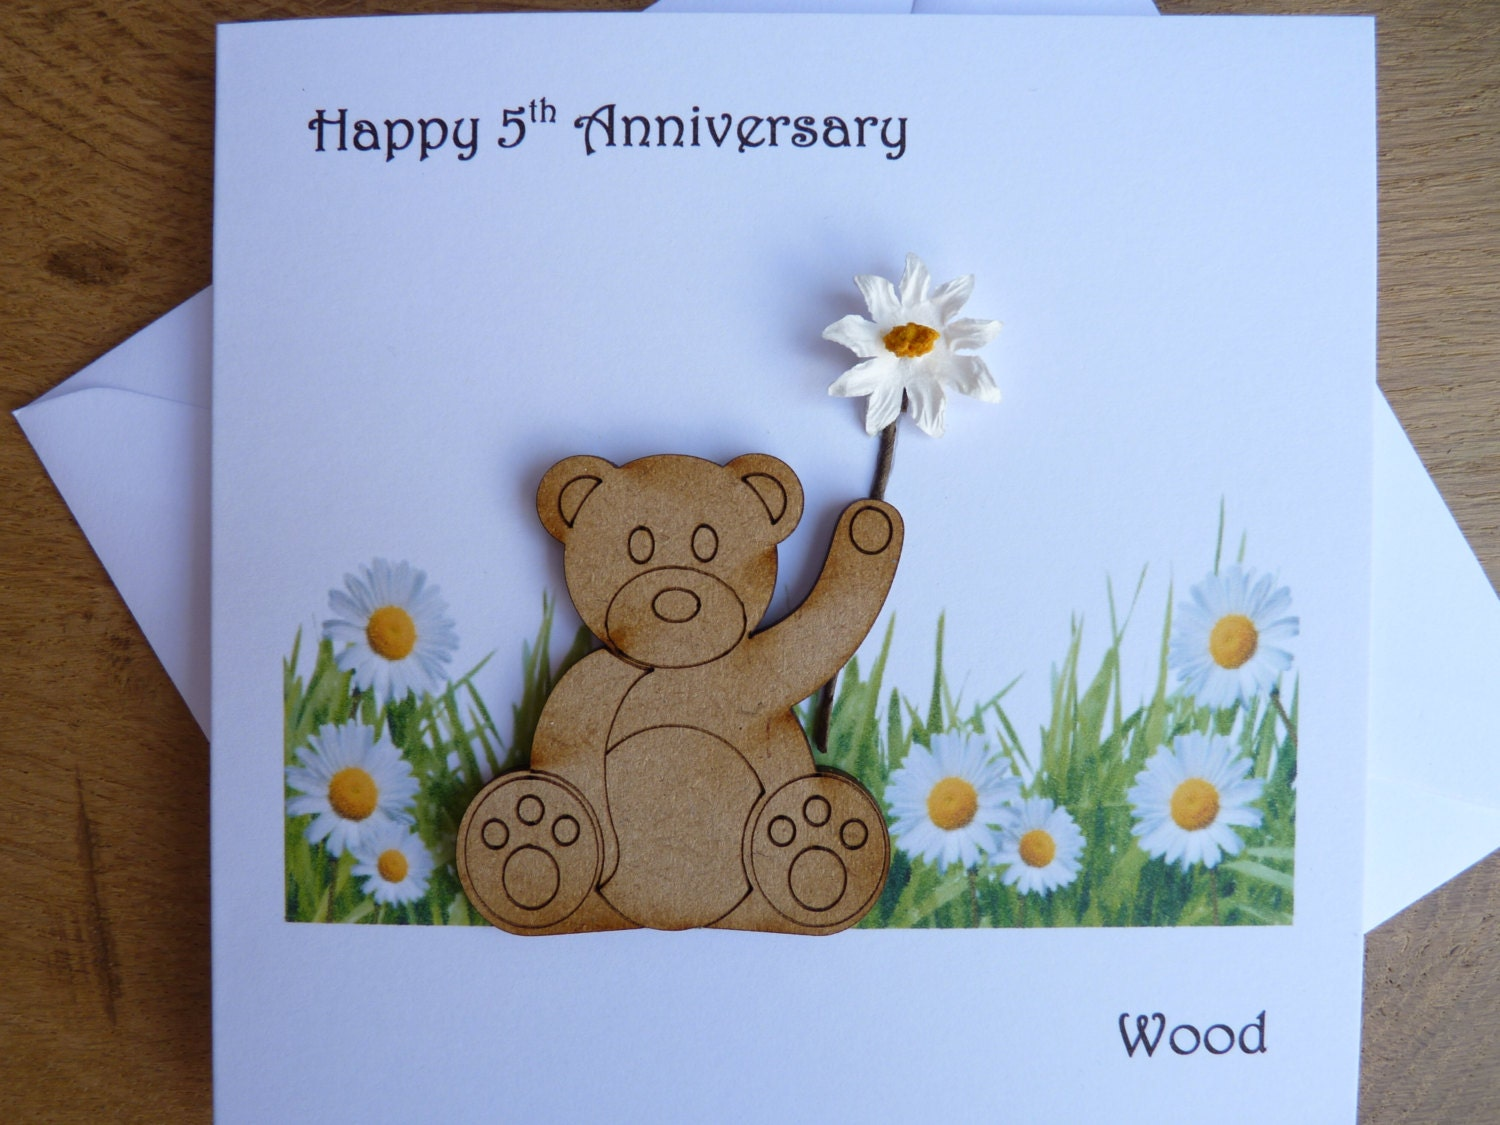 5th Wedding Anniversary Traditional Gifts: 5th Wedding Anniversary Card Five Years Wood Teddy Bear Gift